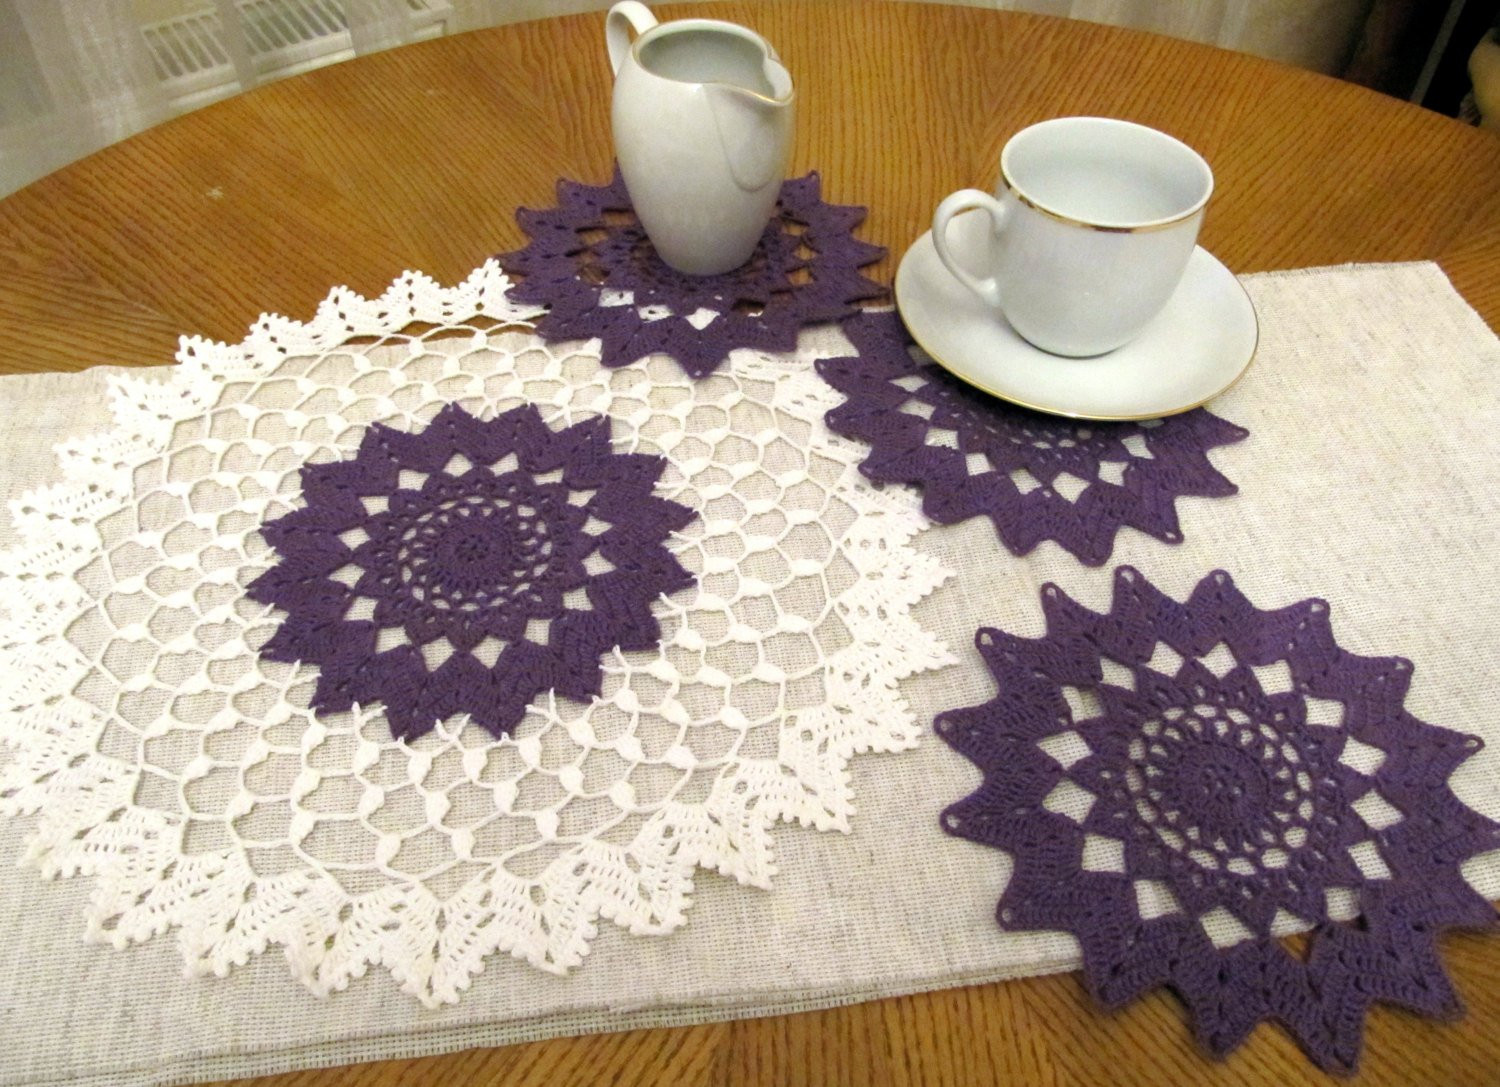 End Table Doilies Best Of Crochet Purple Doily Set Of 4 Pcs Crochet Small Doily Table Of Great 42 Images End Table Doilies